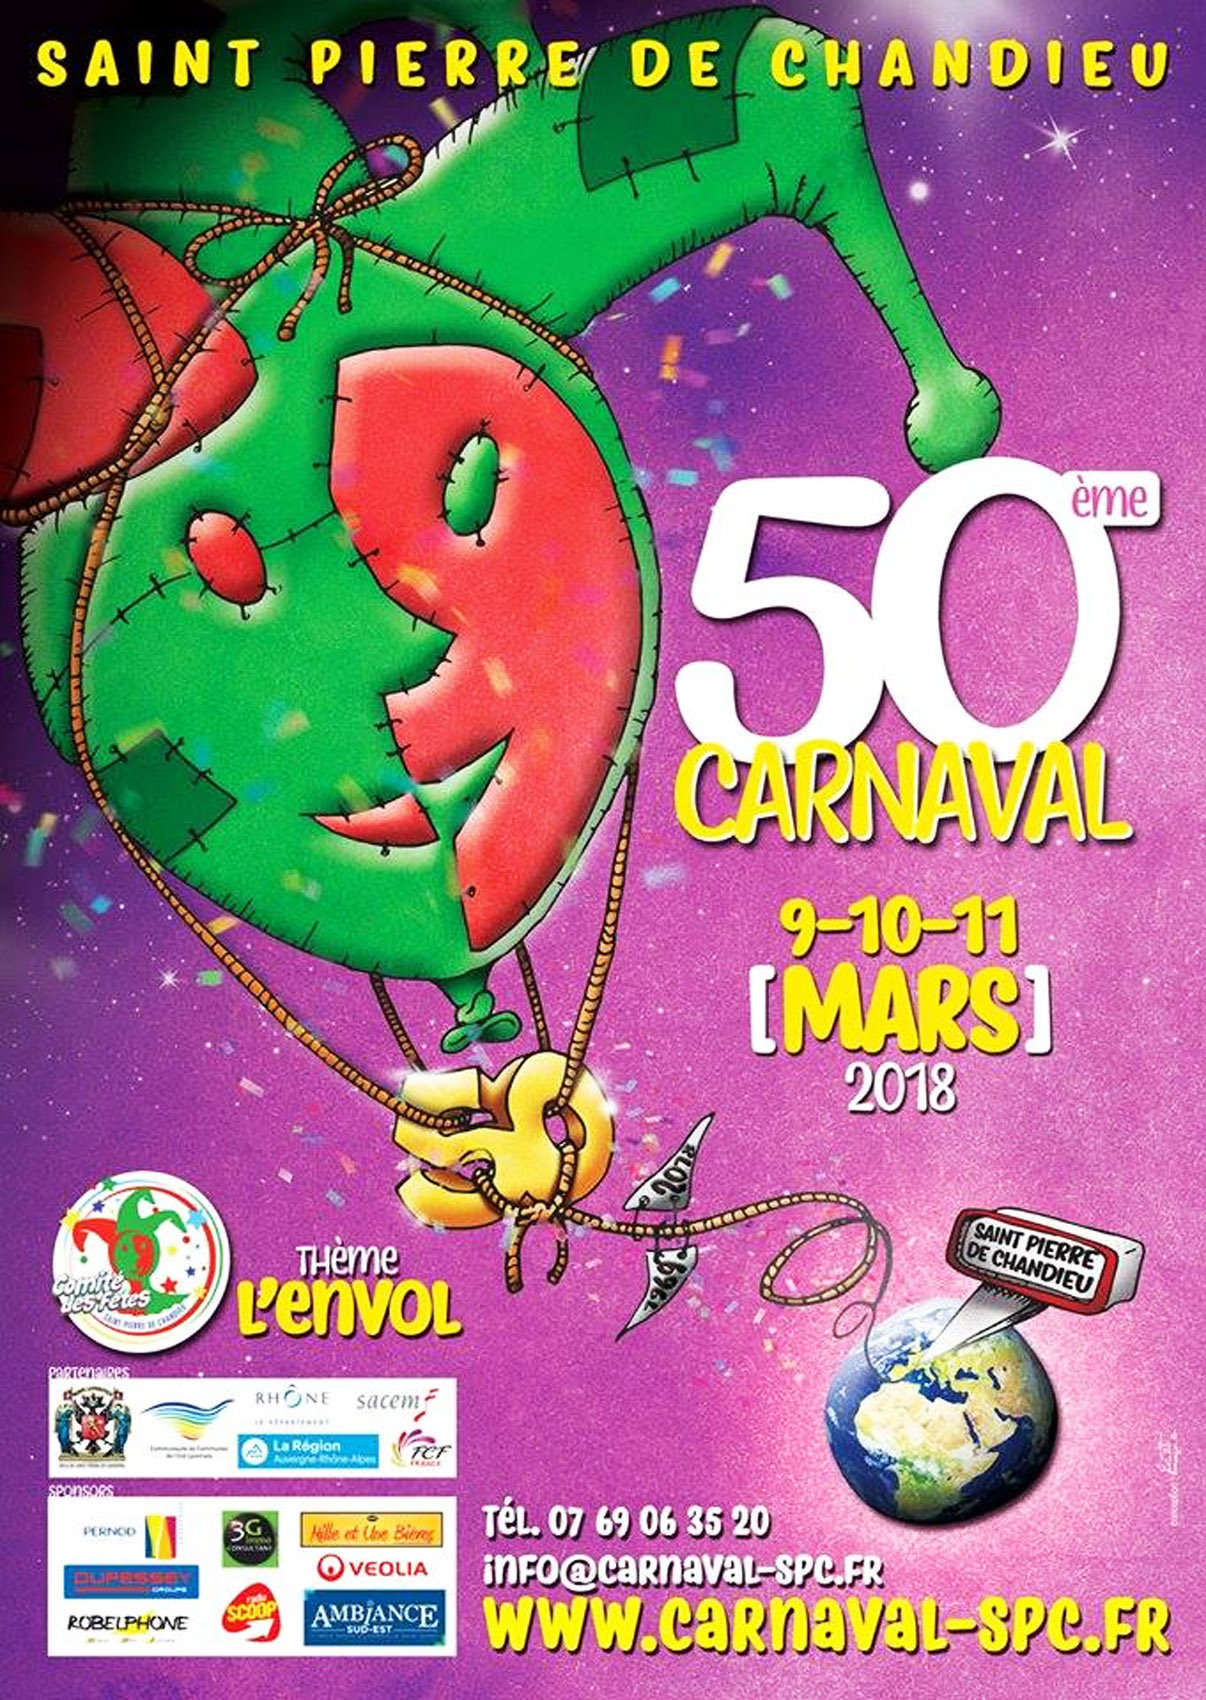 Carnaval saint pierre de chandieu 1